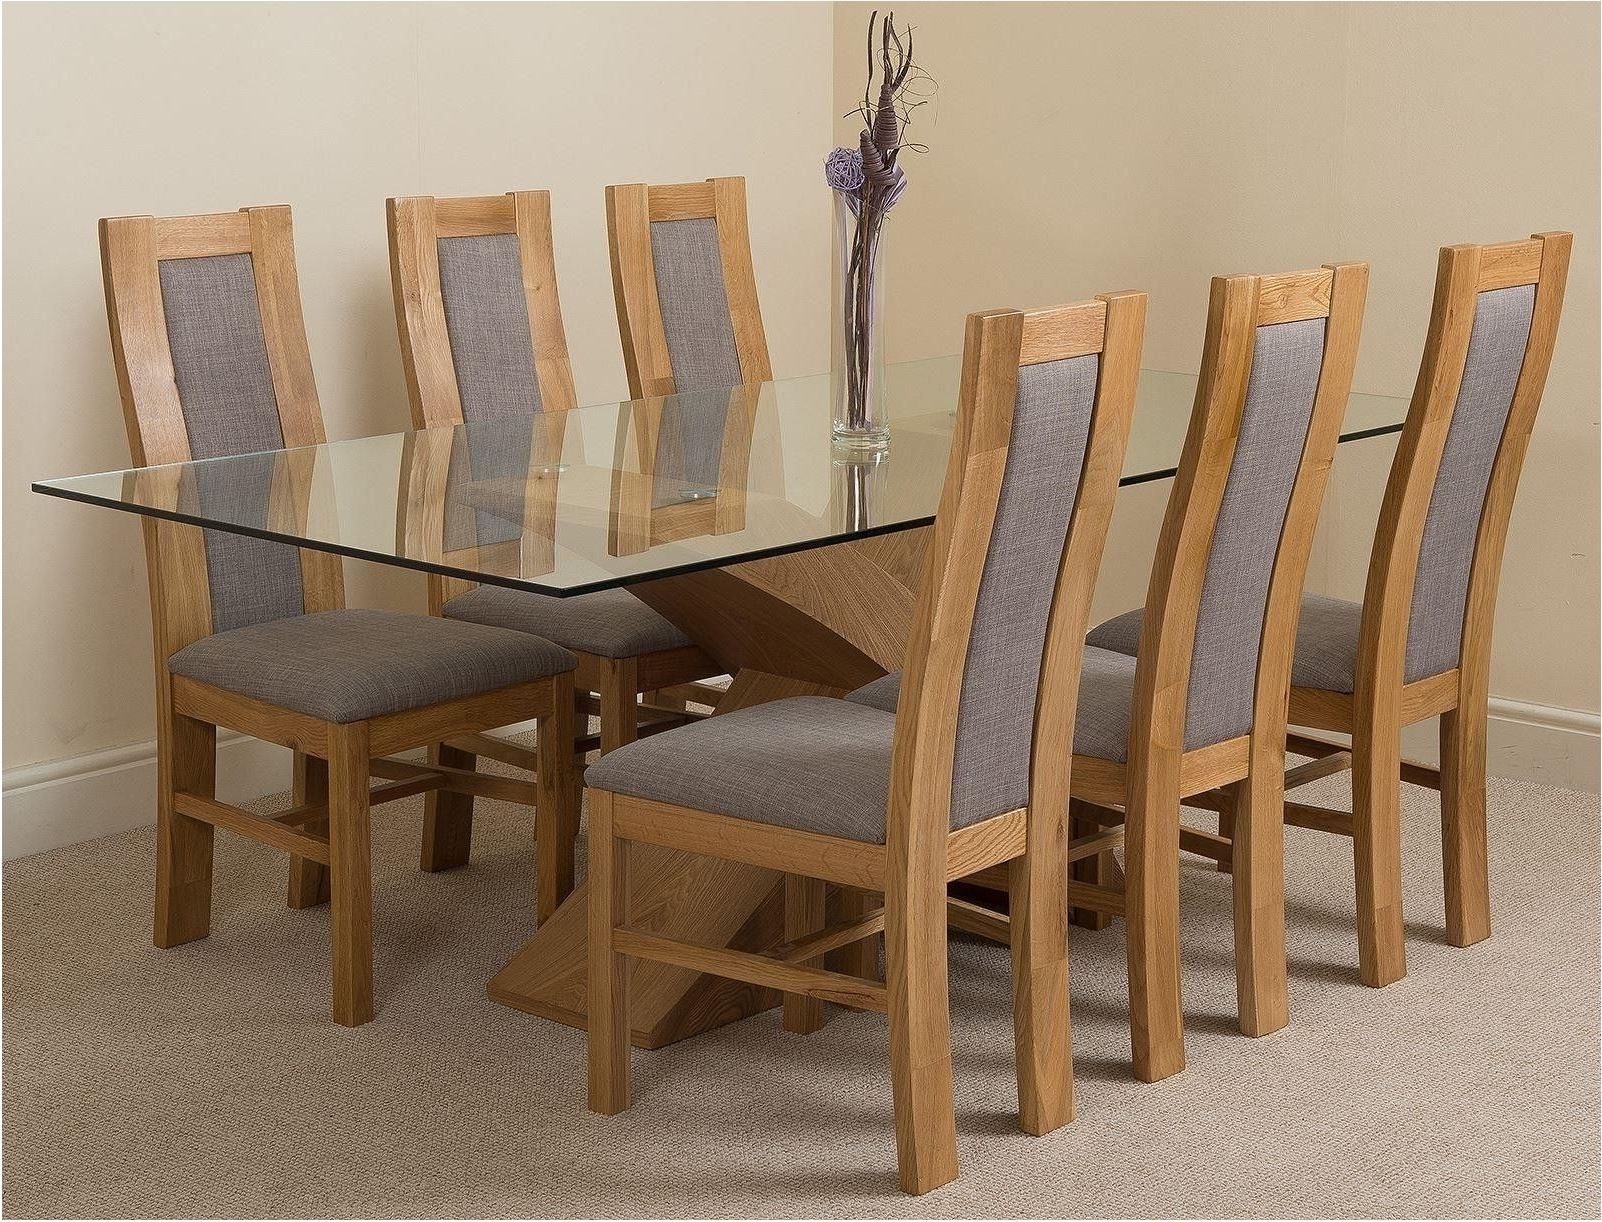 Popular Oak And Glass Dining Tables And Chairs For Breathtaking Extending Oak Dining Table With 4 Chairs Flintshire (View 21 of 25)